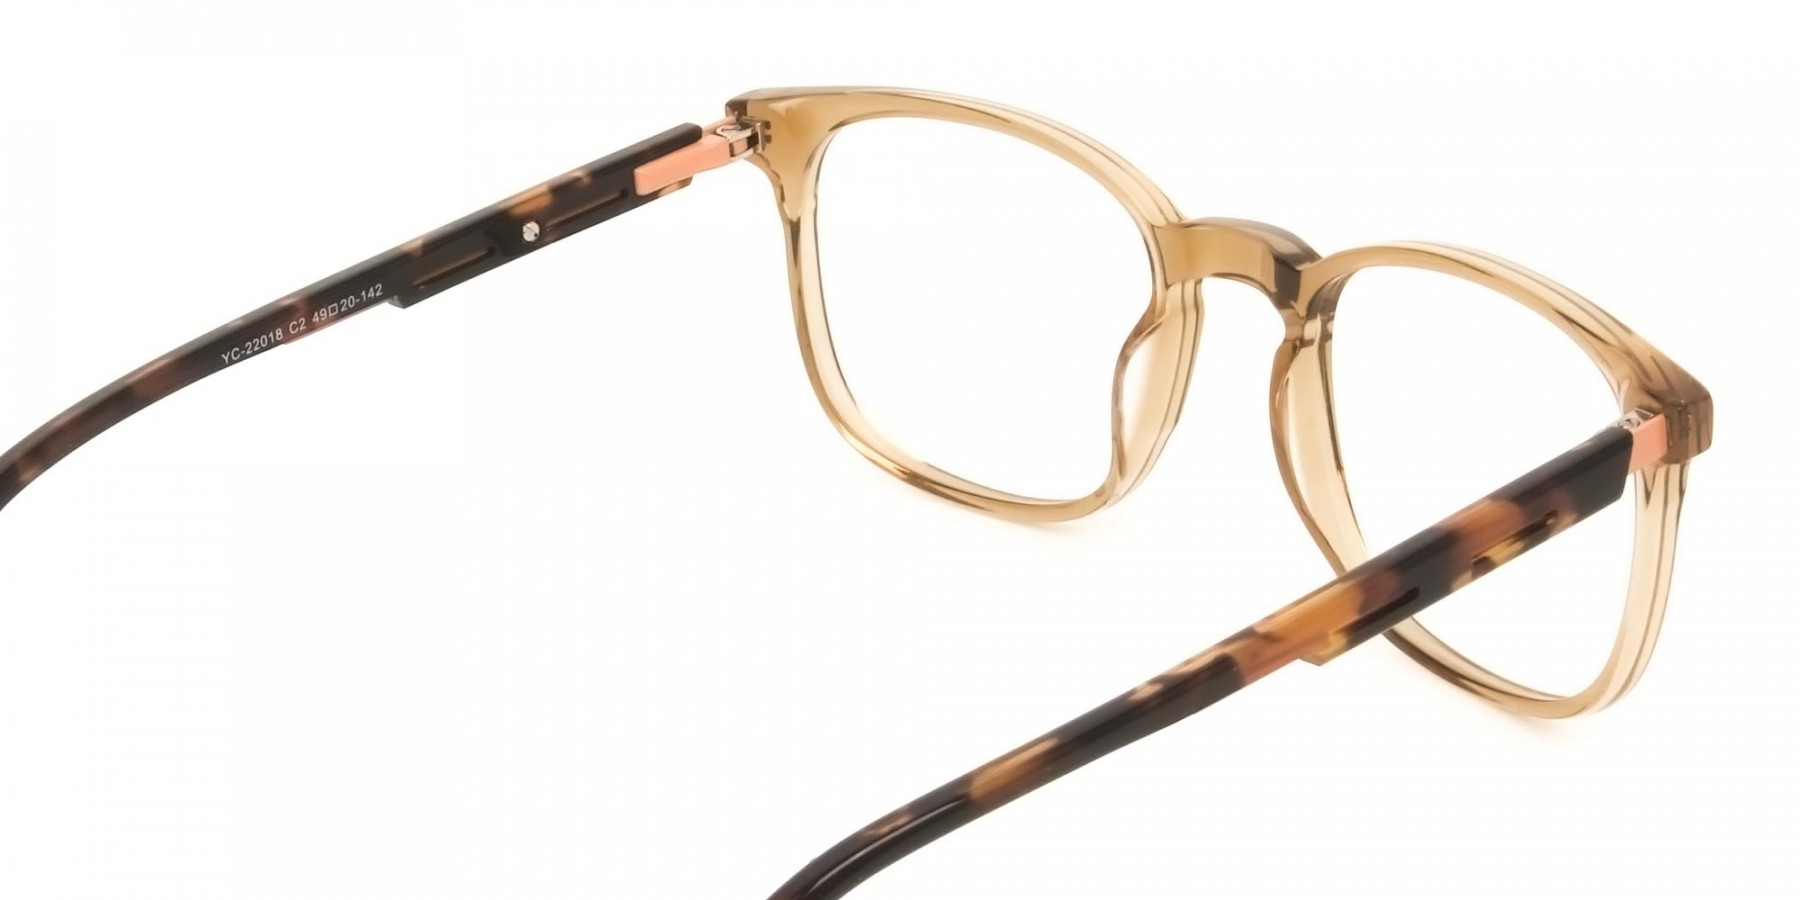 Translucent Brown Havana & Tortoise Large Square Tortoise Shell Glasses - 1